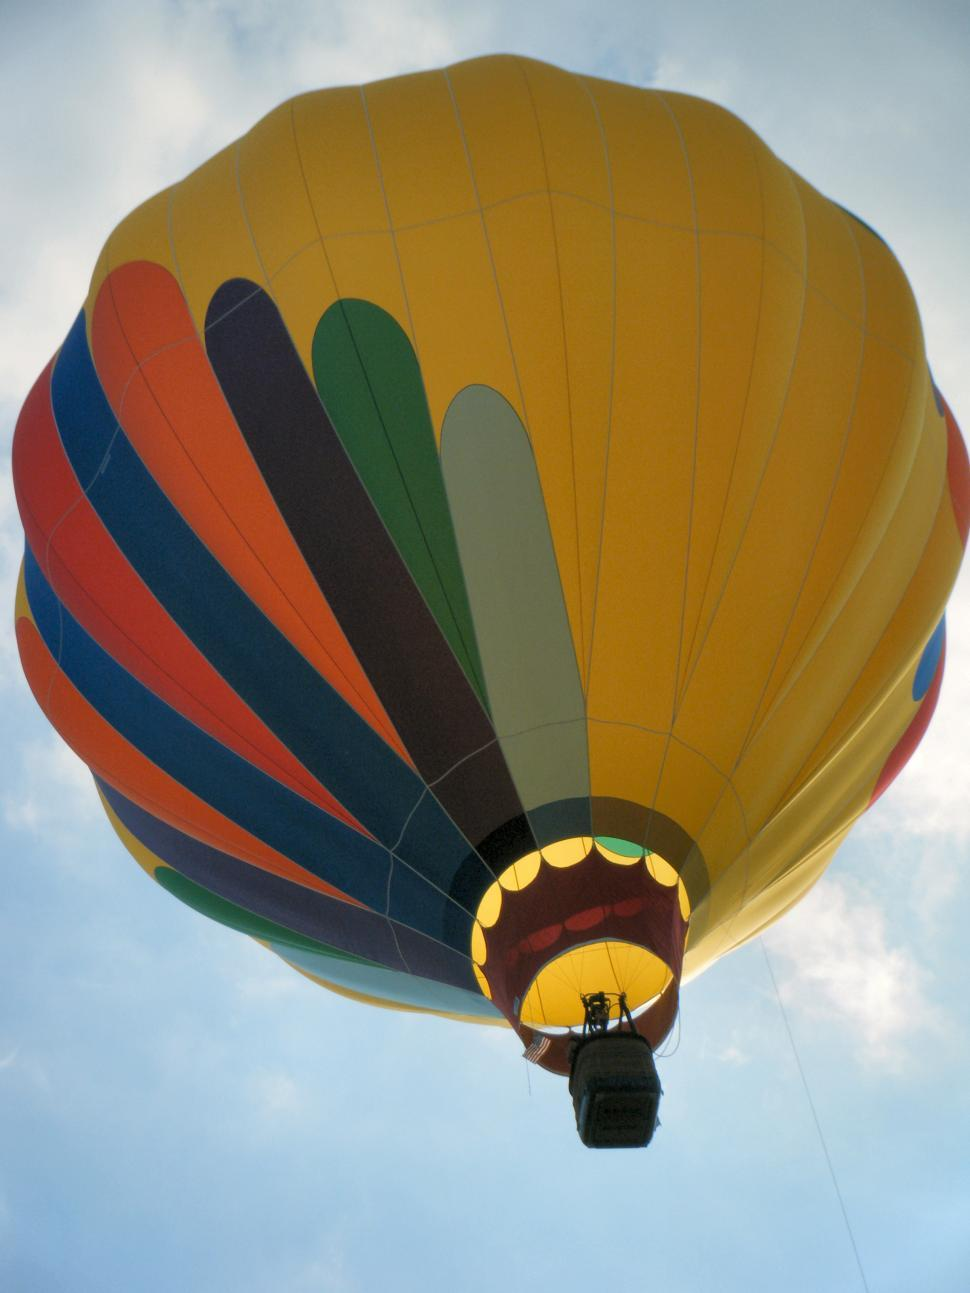 Download Free Stock HD Photo of Colorful hot air balloon in the sky Online